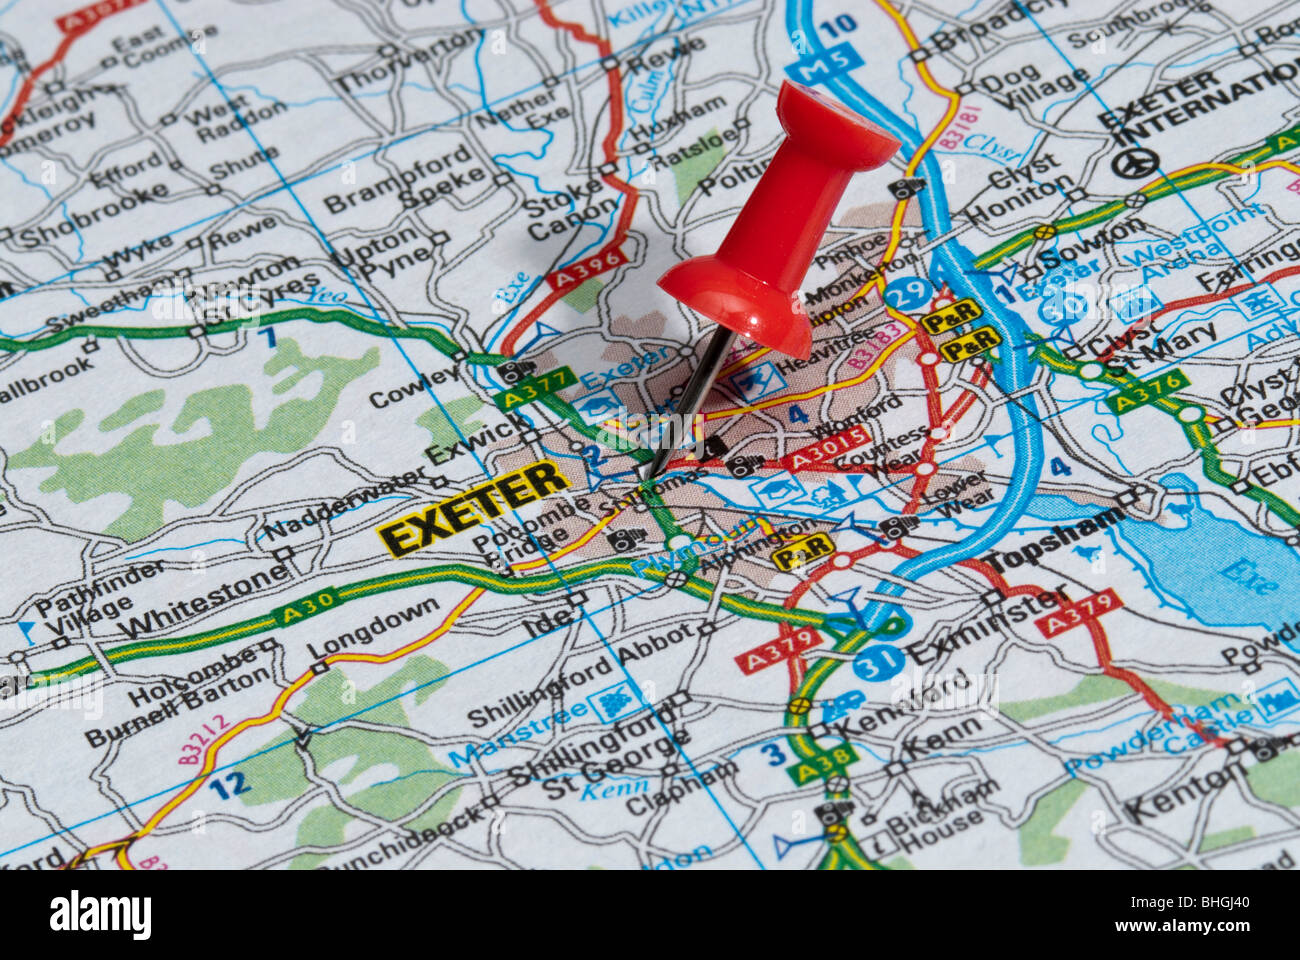 red map pin in road map pointing to city of Exeter Stock Photo